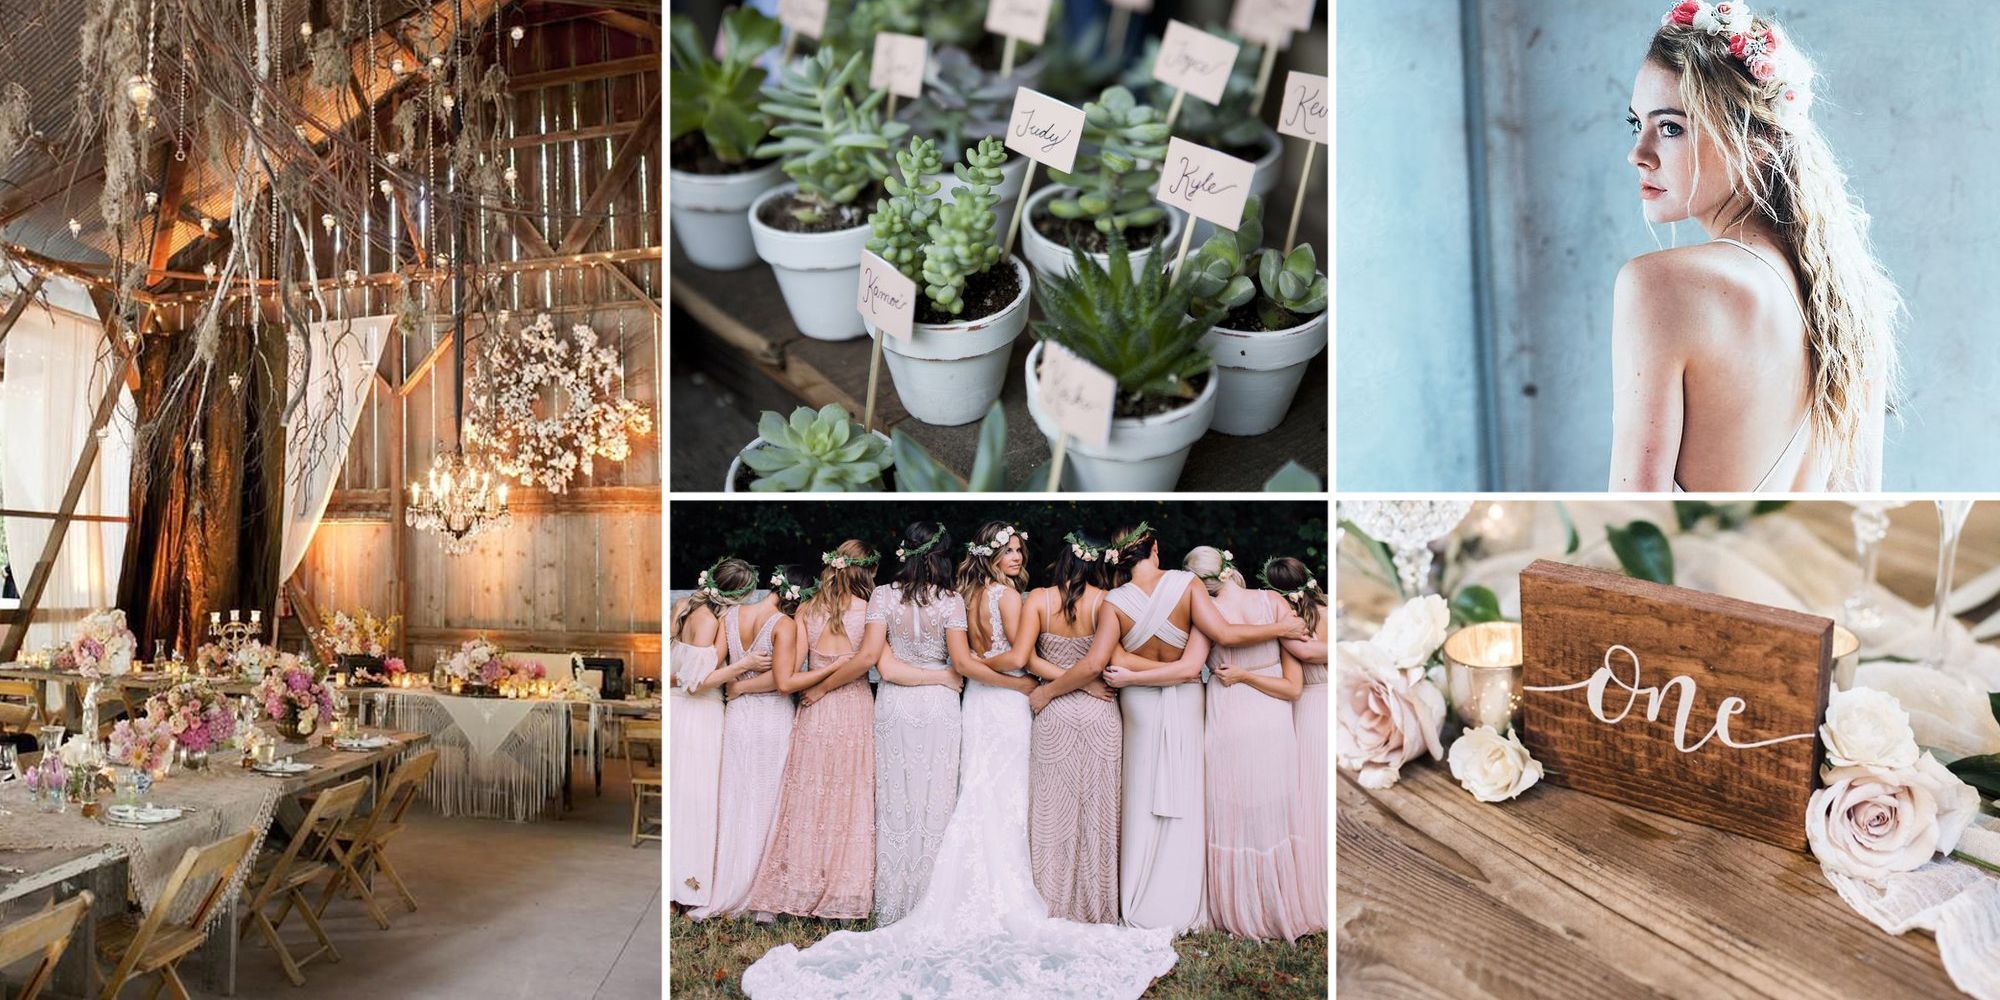 The 10 Wedding Trends That We Hope Not To See In 2018 The 10